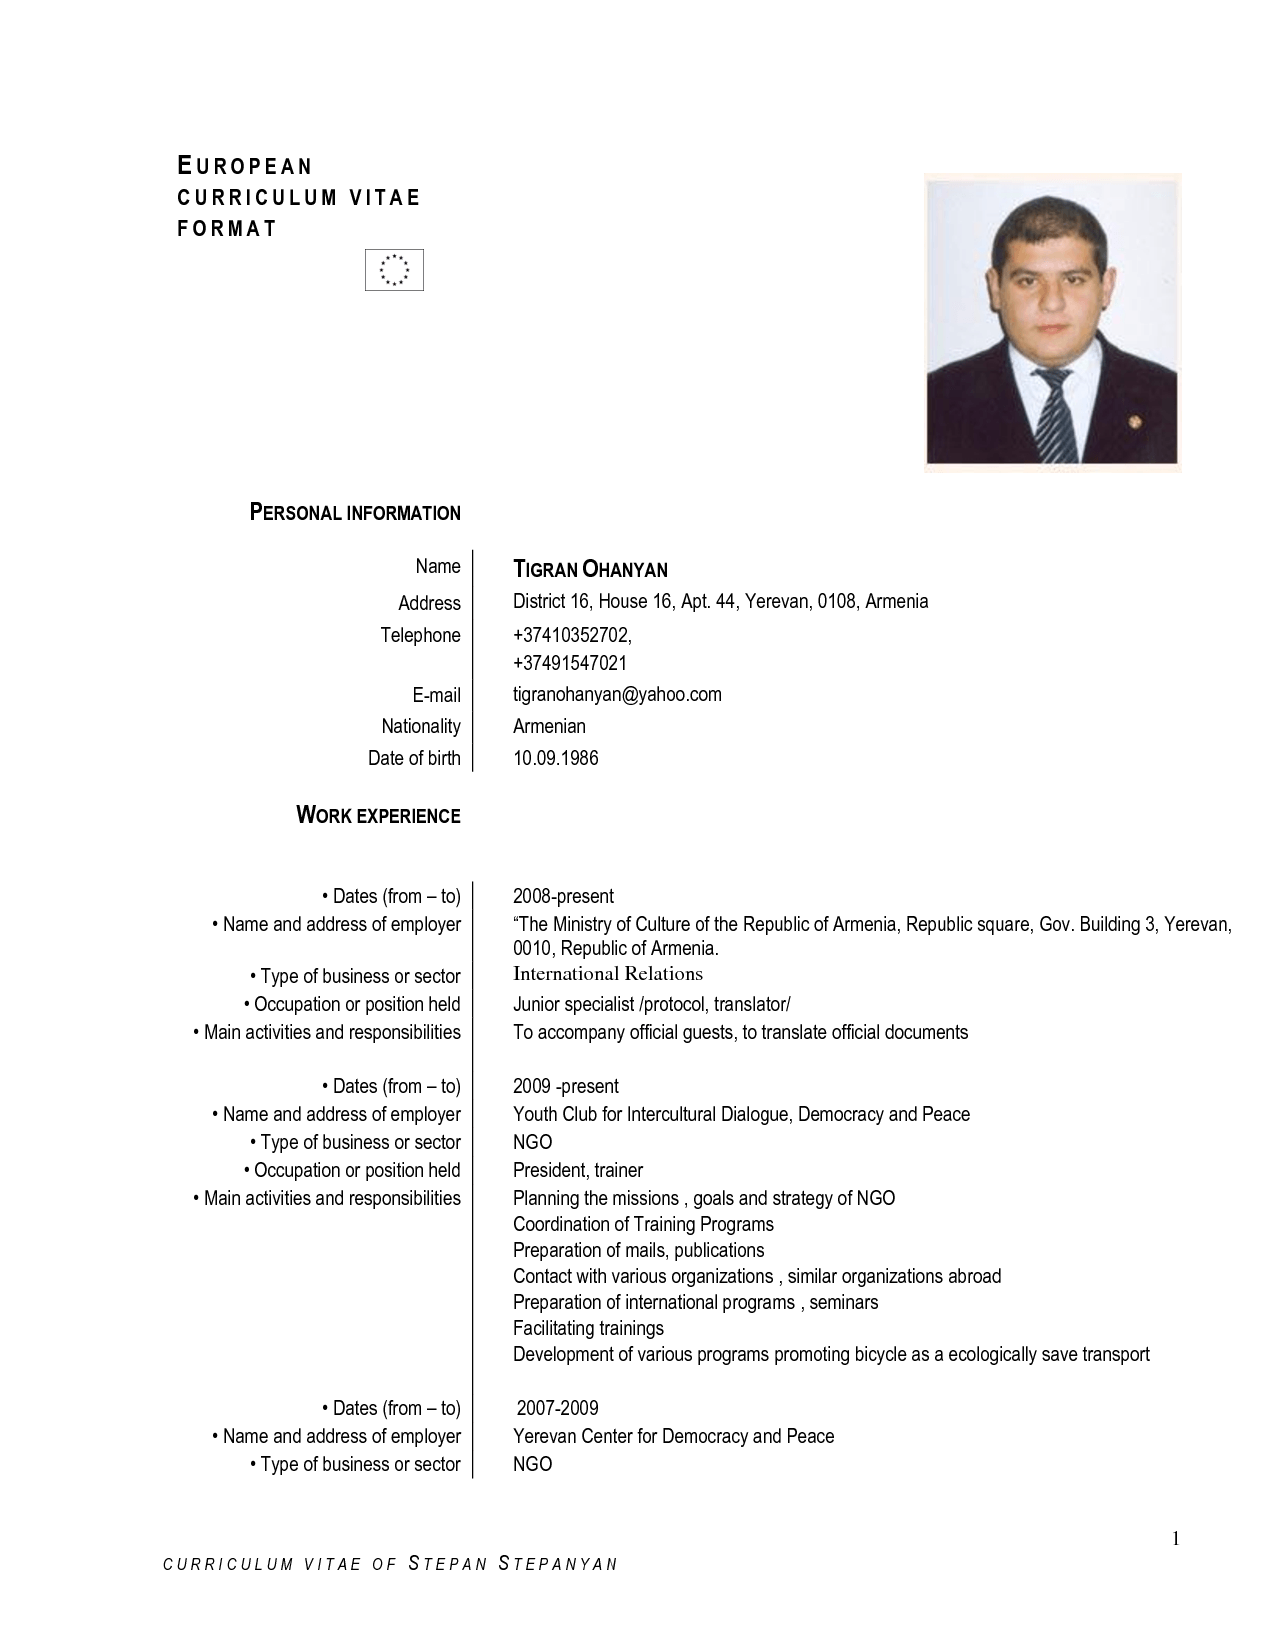 europass cv english example doc cv examples europass english cv template